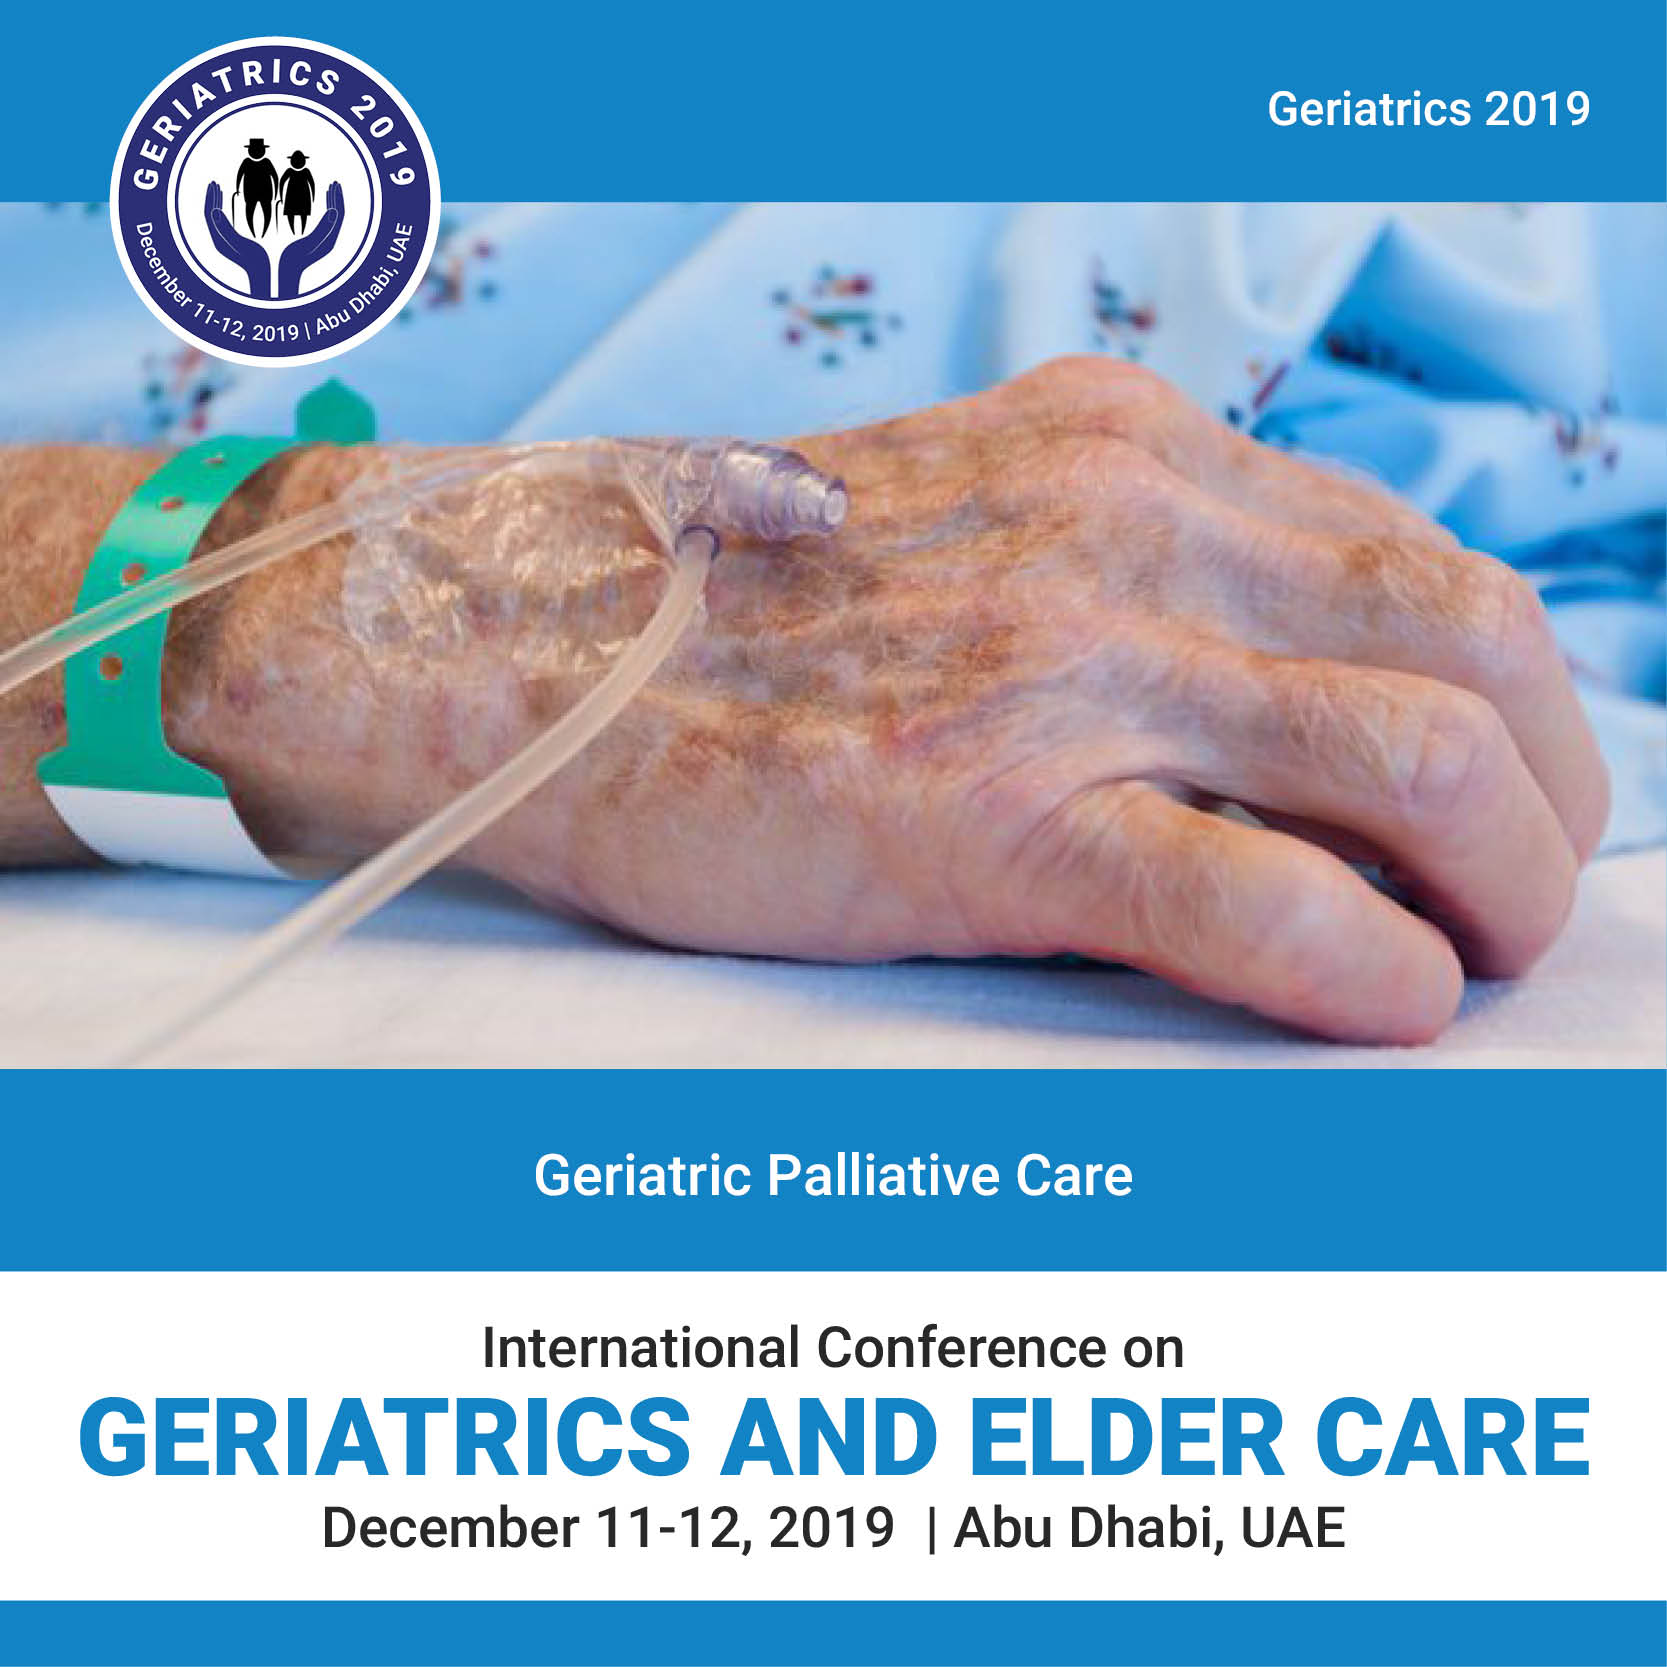 Geriatric Palliative Care Photo